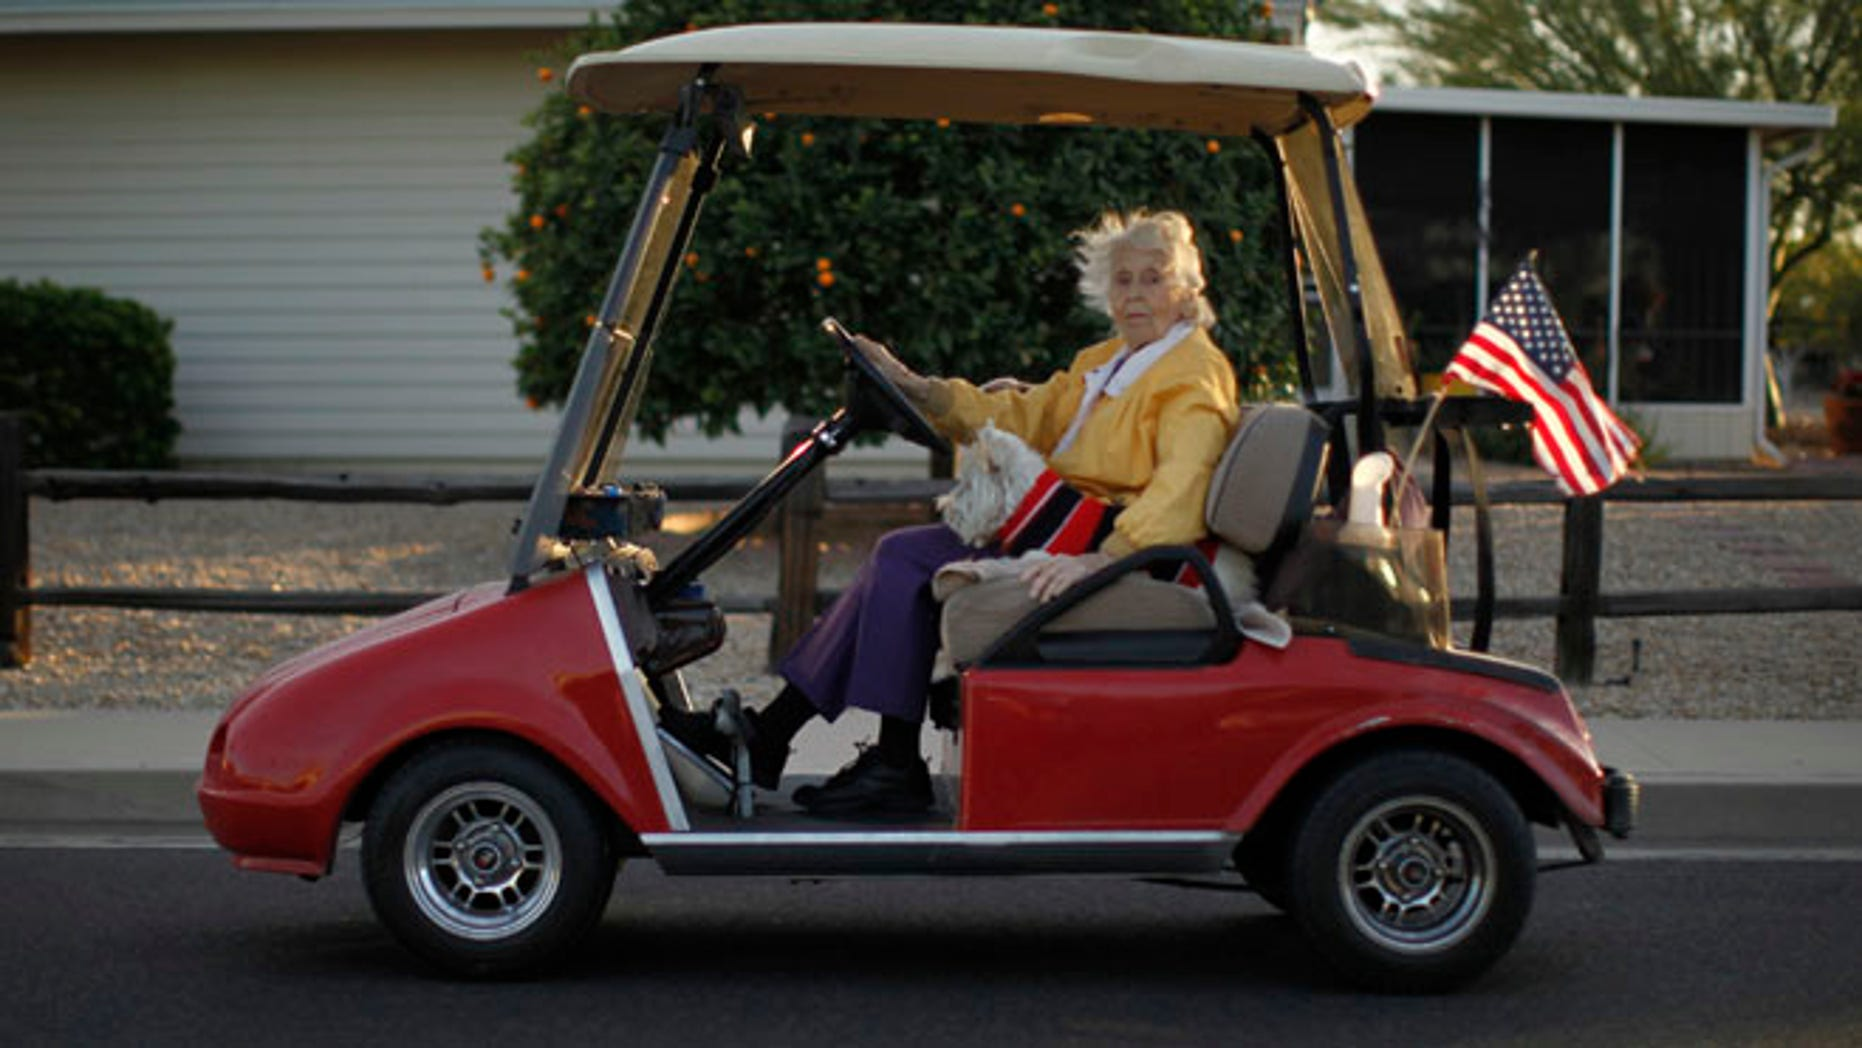 A woman rides in a golf cart with her dog in Sun City, Arizona, January 6, 2013.